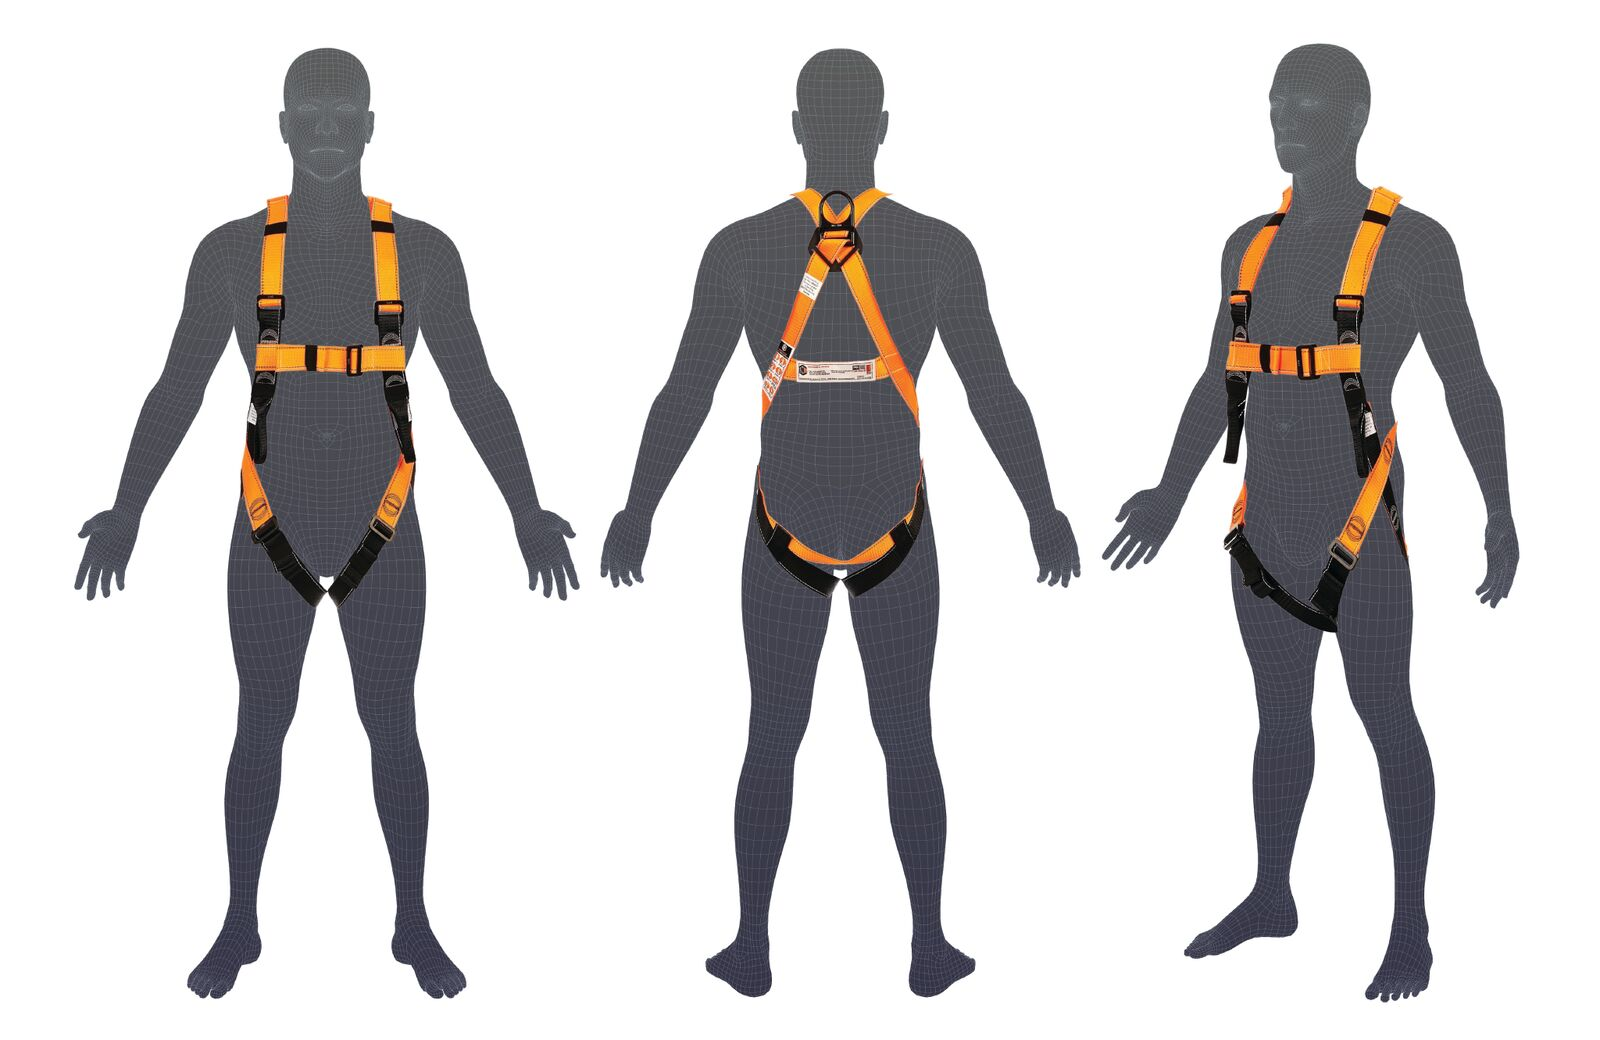 H101 LINQ Basic Full Body Harness